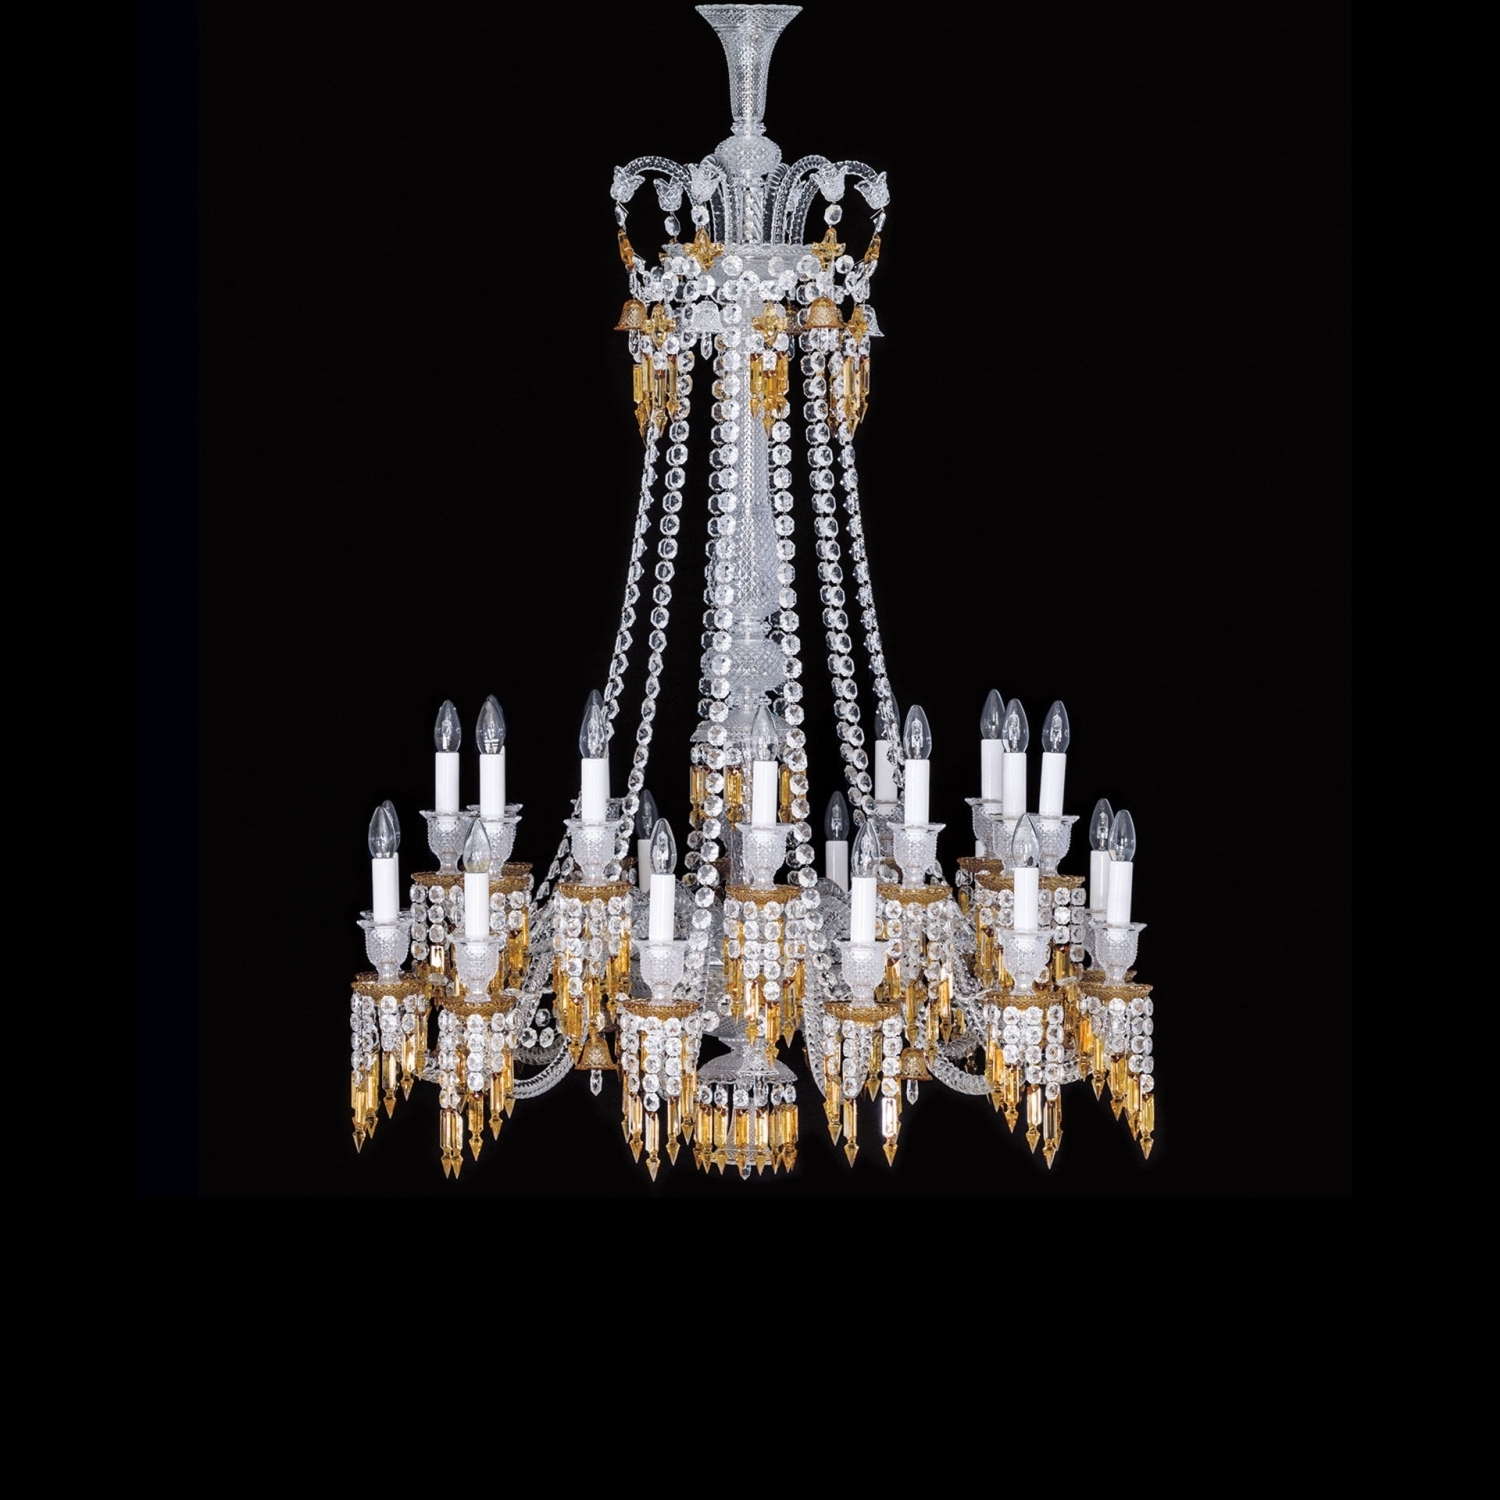 Chandelier 24L Baccarat Zenith Charleston 2809432 Throughout 2018 Long Chandelier Lighting (View 15 of 15)